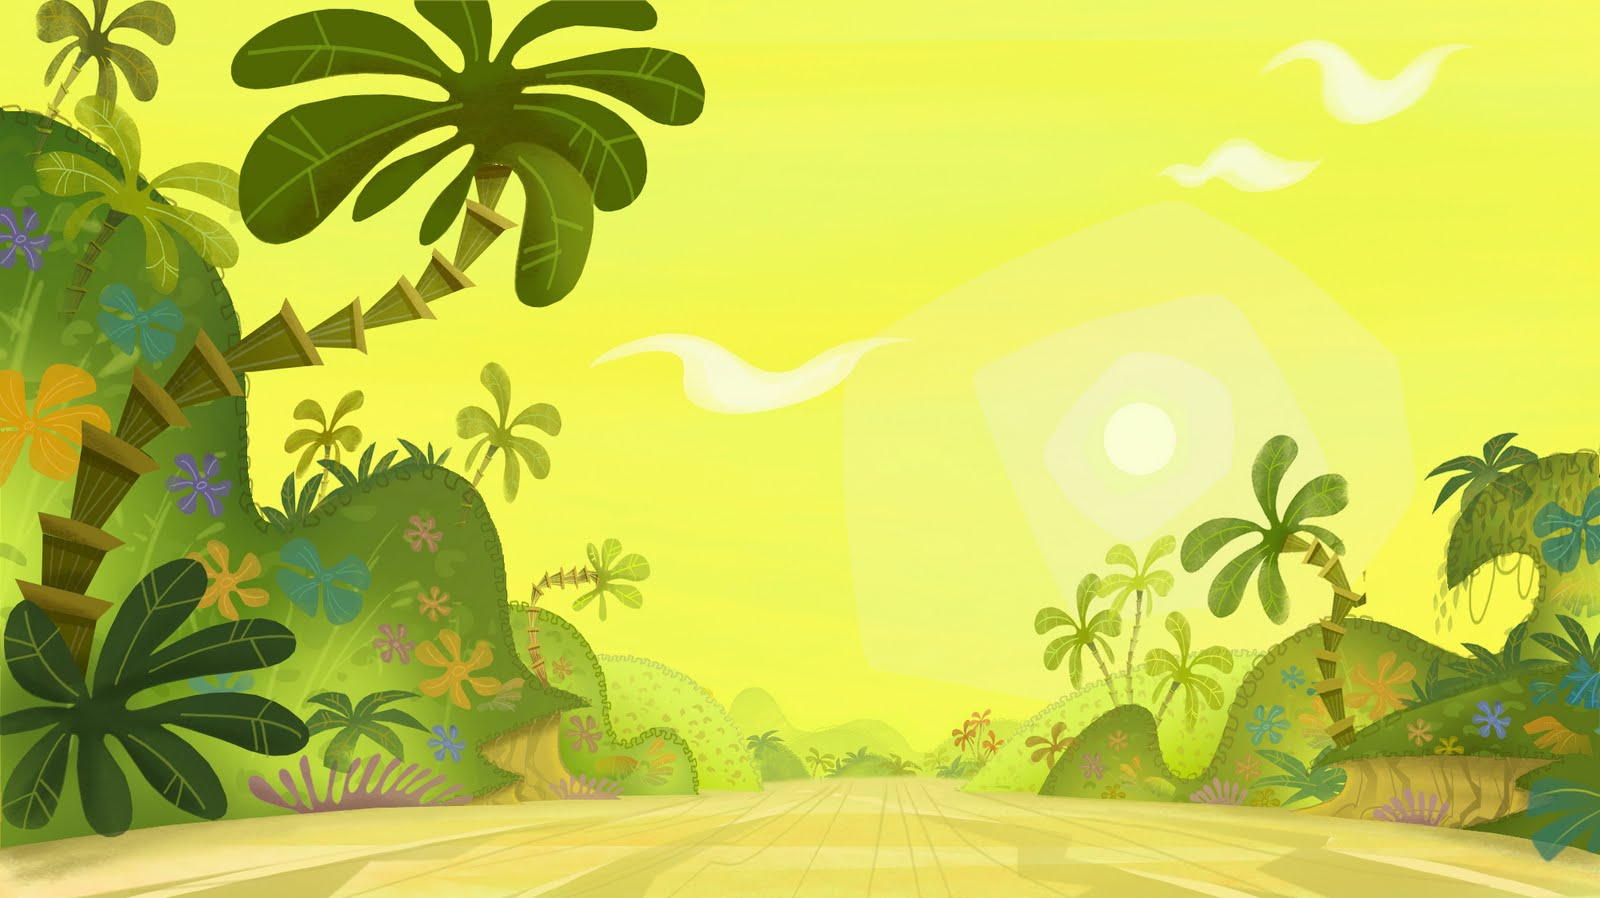 Free Download Jungle Road Background Wallpaper Hd 1600x898